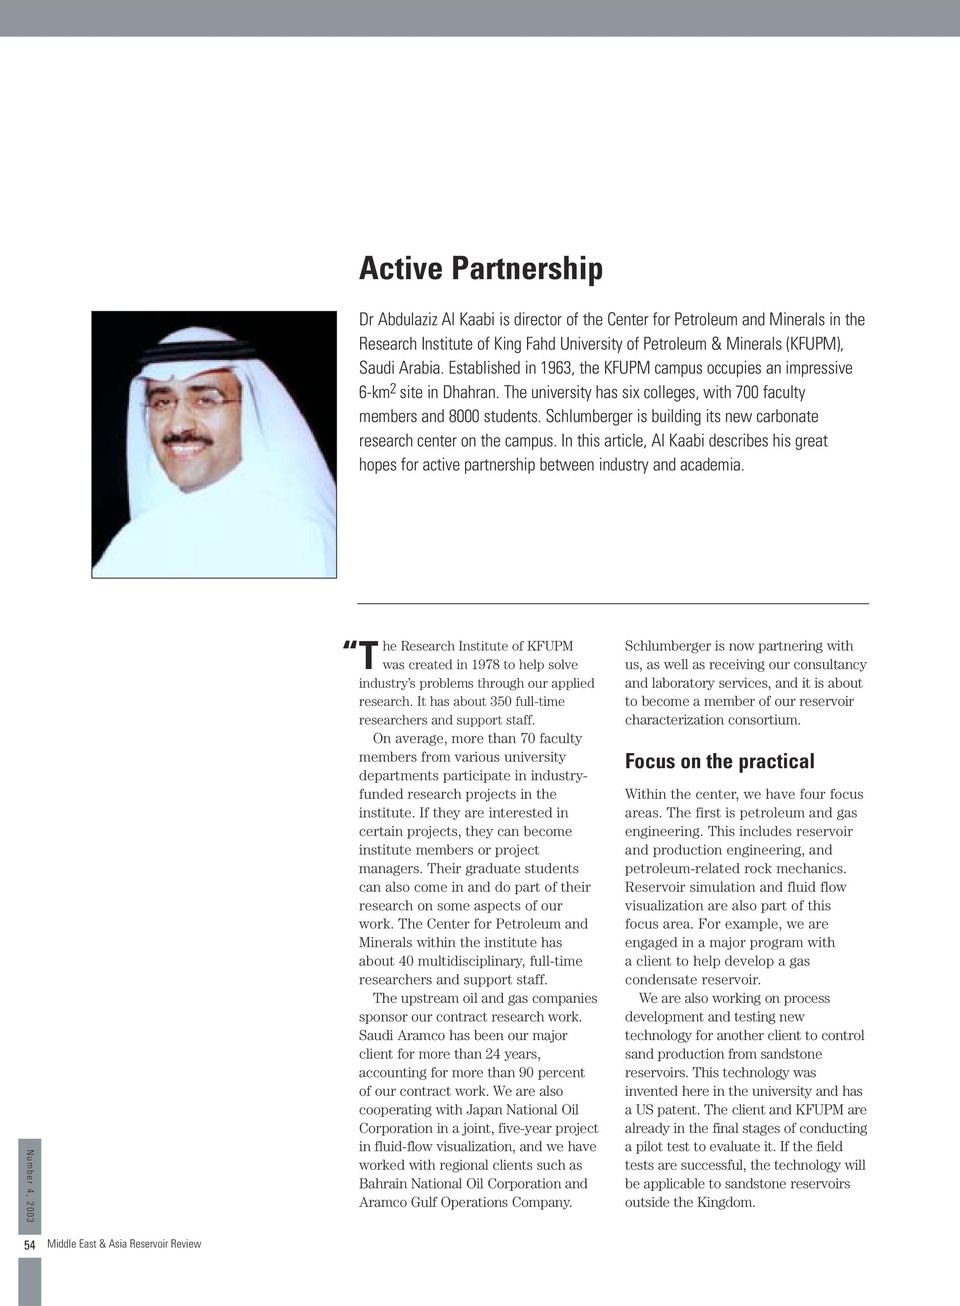 Schlumberger is building its new carbonate research center on the campus. In this article, Al Kaabi describes his great hopes for active partnership between industry and academia.